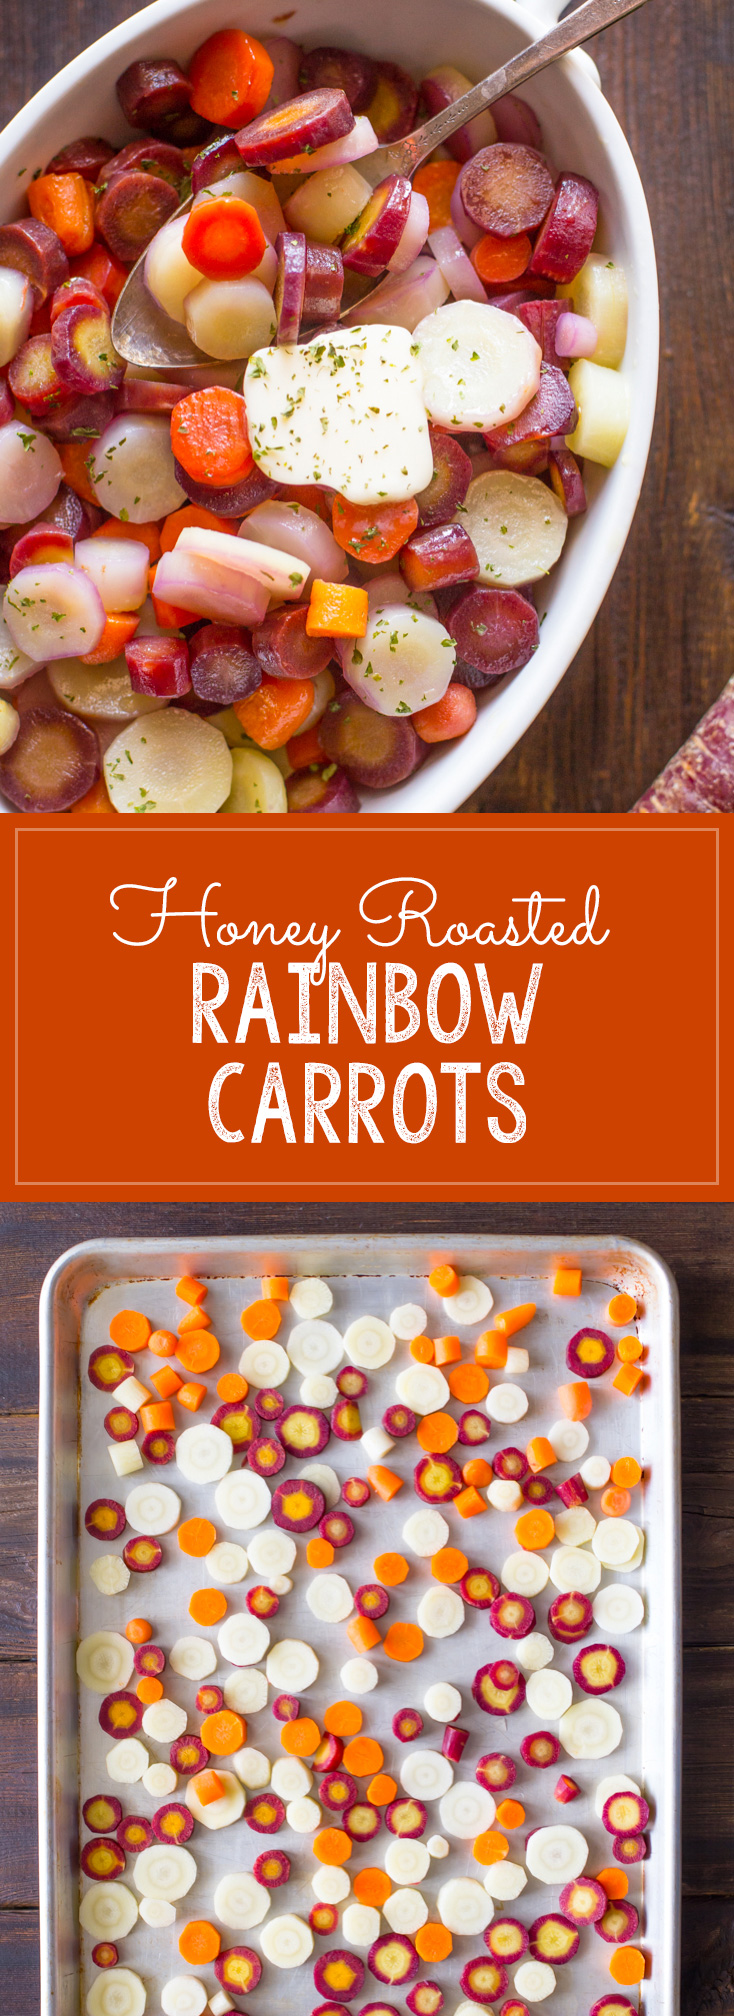 Honey Roasted Rainbow Carrots - A beautiful trio of purple, white, and orange carrots roasted to tender perfection and finished off with honey and butter.